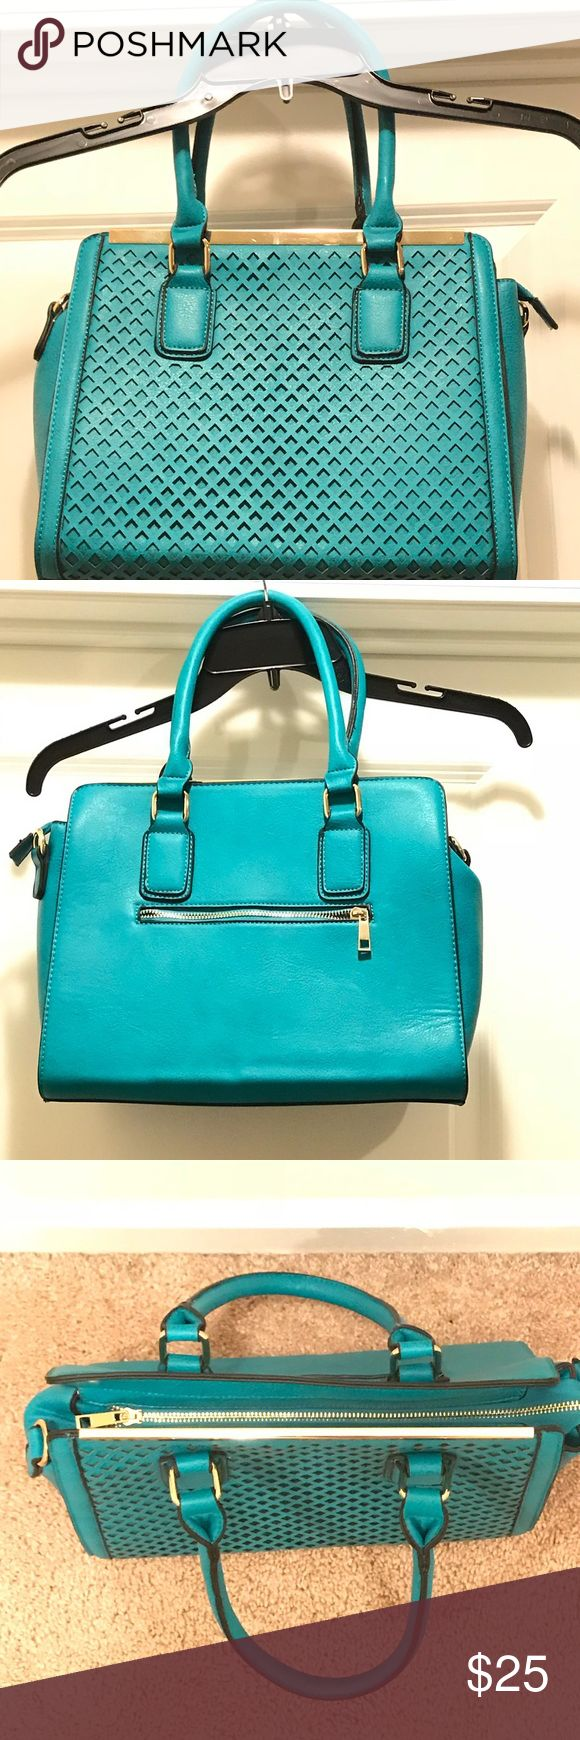 Beautiful Teal Handbag This beautiful teal purse has never been used. It has a matching strap that is included. Nice Gold trim with zipper that is functional. Has separate compartments for storage. Nice design on front. No stains, no damages. Has a nice firm sharp. It was previously purchased from another Posher. Unfortunately their isn't any label to tell what the actual brand is. Bags Shoulder Bags